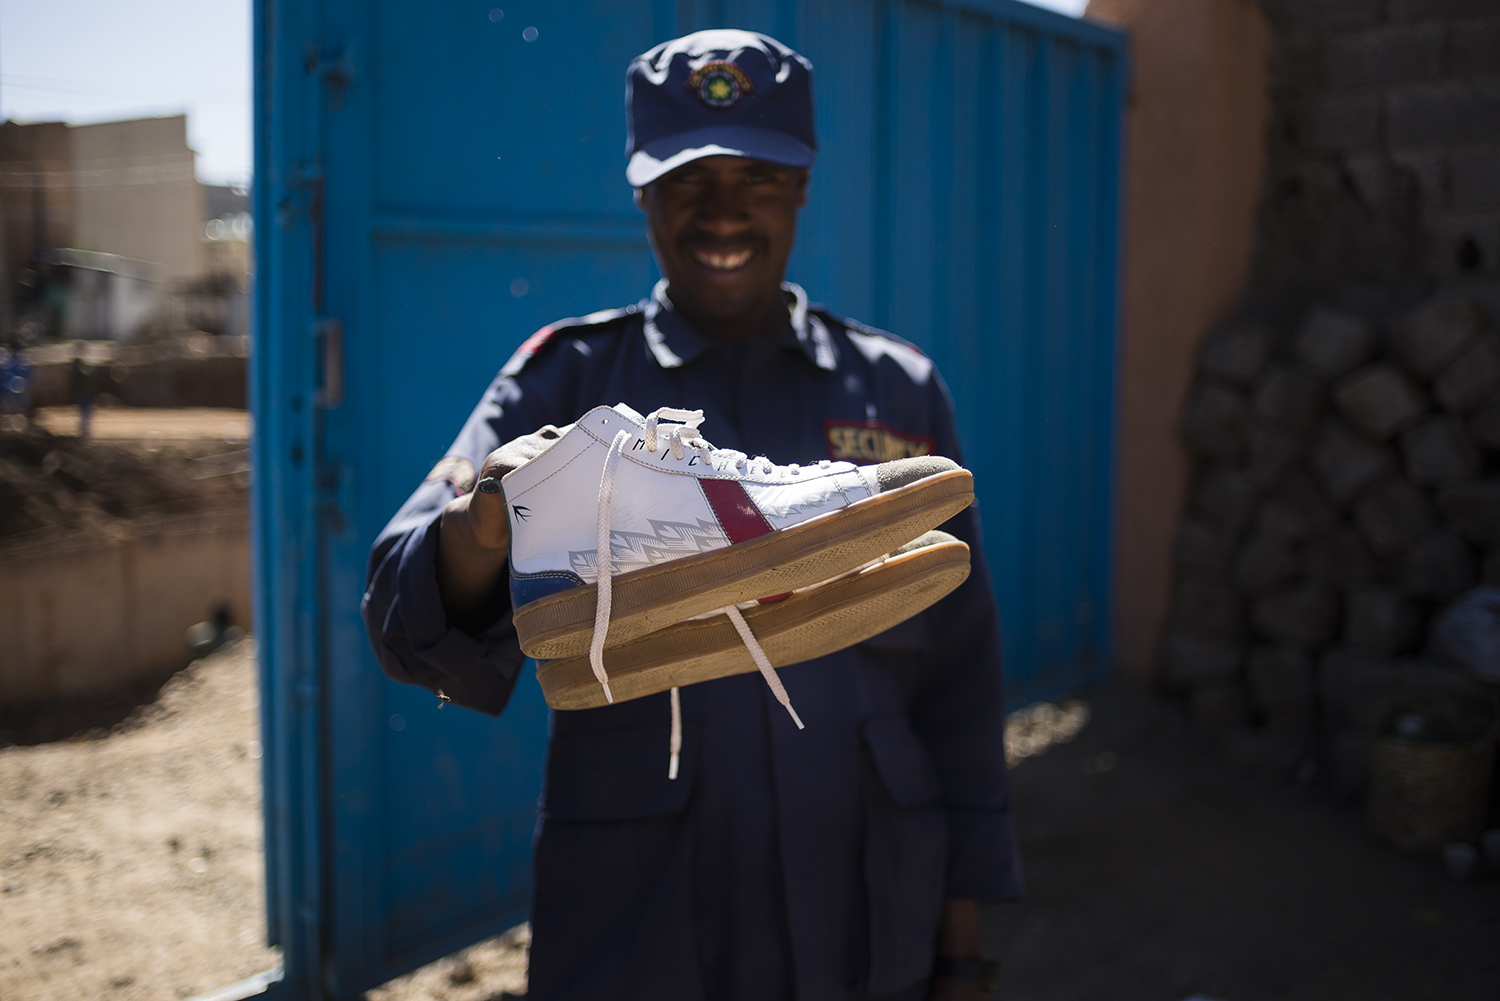 SAWA x Michel Berger Hotel    The great people of the    Michel Berger Hotel    shared with us all their creativity.  Just like the  Schalbe  (Swallow) these shoes brought us all the way from  Africa . This shoe is our tribute to that brave little bird and the amazing continent it comes from. And for all those other long-distance travellers out there, these trainers come with a special in-built navigation system meaning you 'll never confuse right from left again and won't ever get lost while wearing them. These shoes don't require batteries.   Take off and fly with the    Michel Berger    Schalbe!    www.michelbergerhotel.com